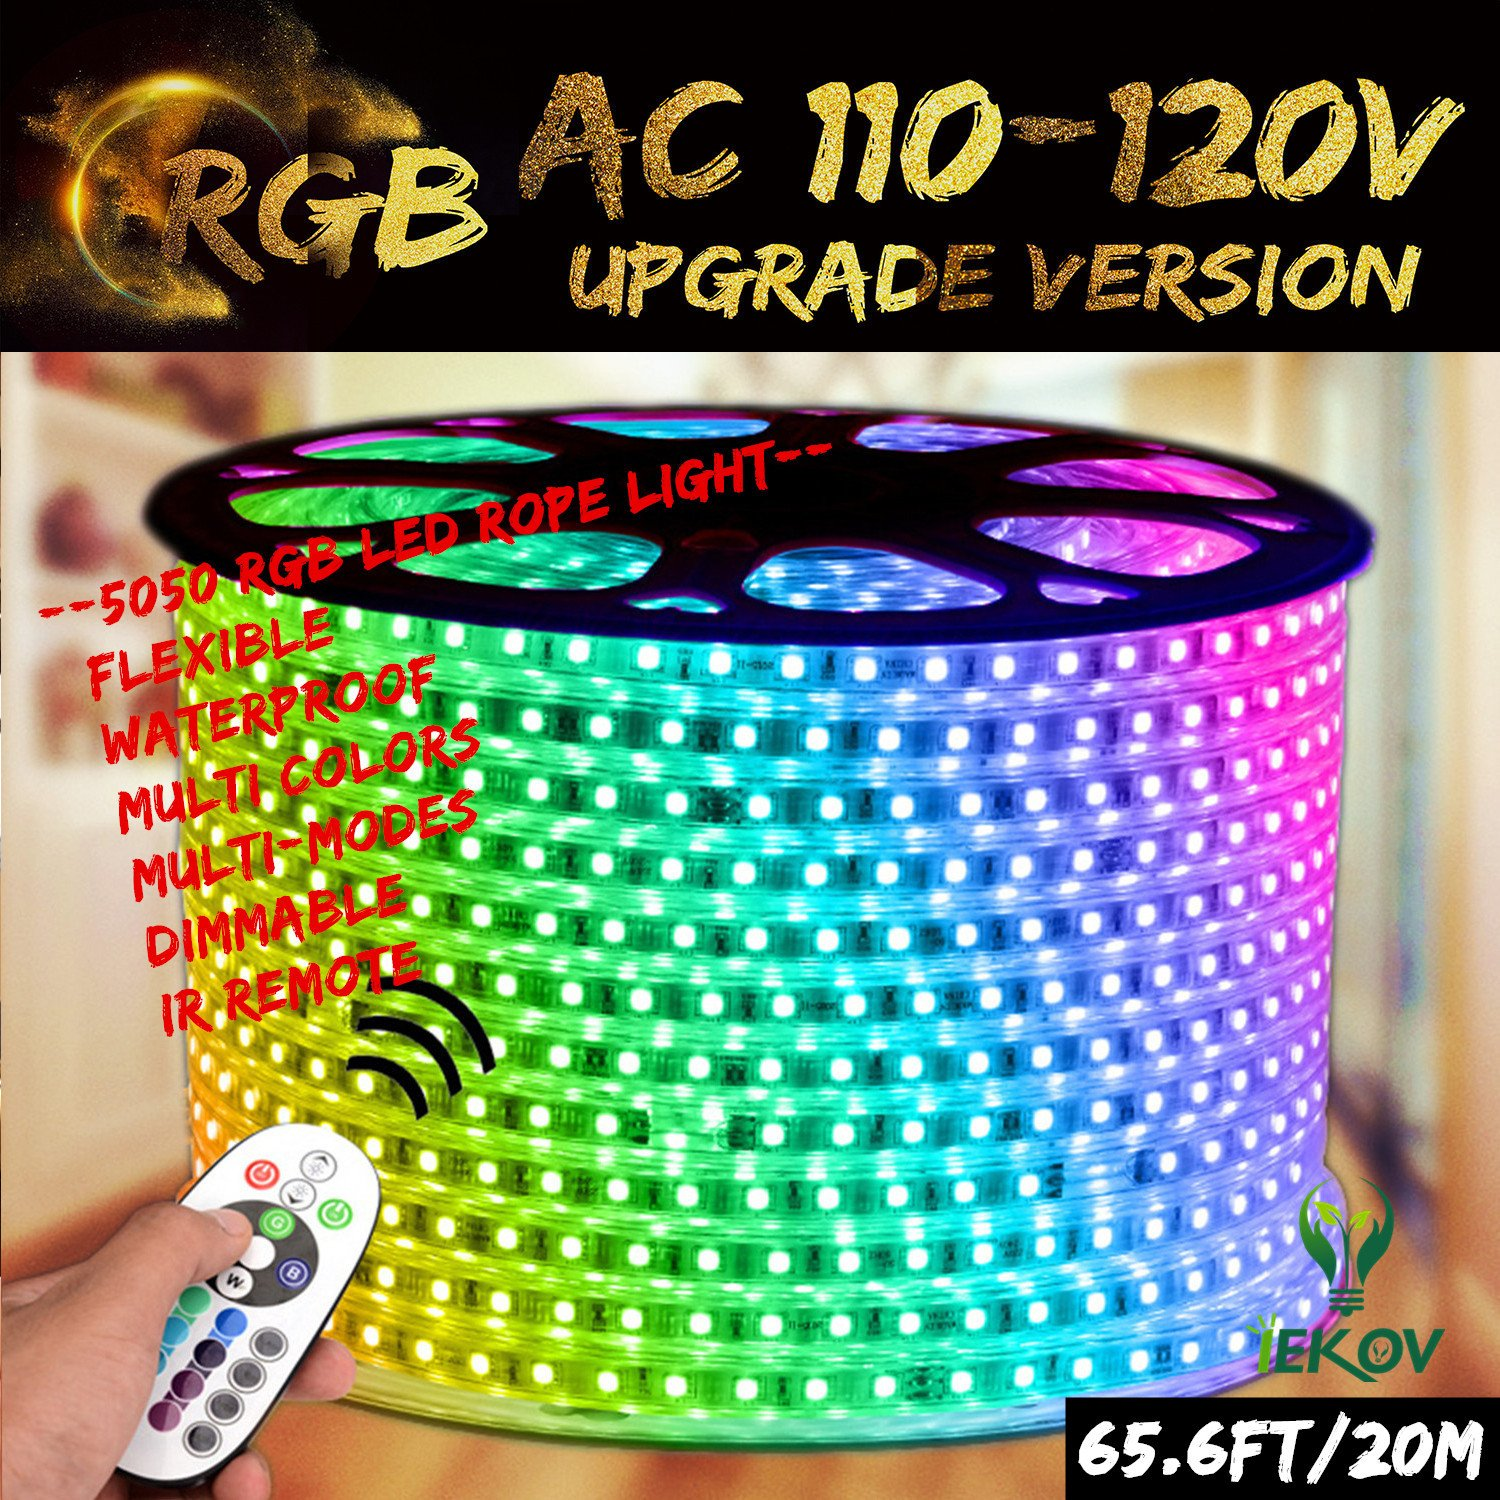 Iekov Rgb Led Strip Light Trade Ac 110 120v Flexible Quick Adapter Wiring Connector Multi Color 5050smd Waterproof Colors Modes Function Dimmable Smd5050 Rope With Remote